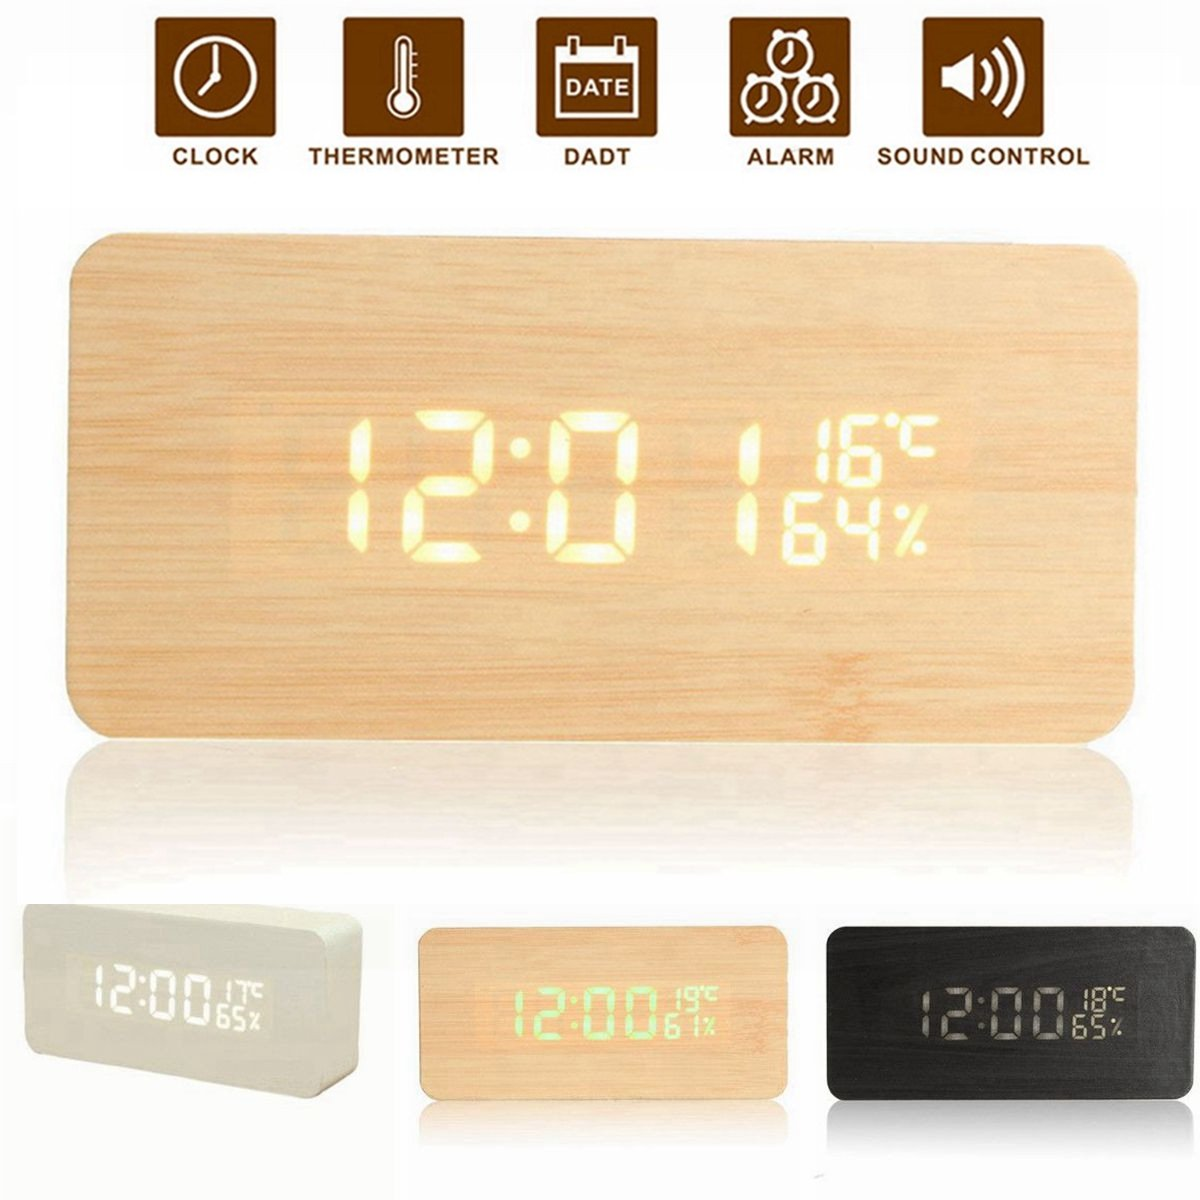 USB Voice Control Wooden Rectangle Temperature LED Digital Alarm Clock Humidity Thermometer